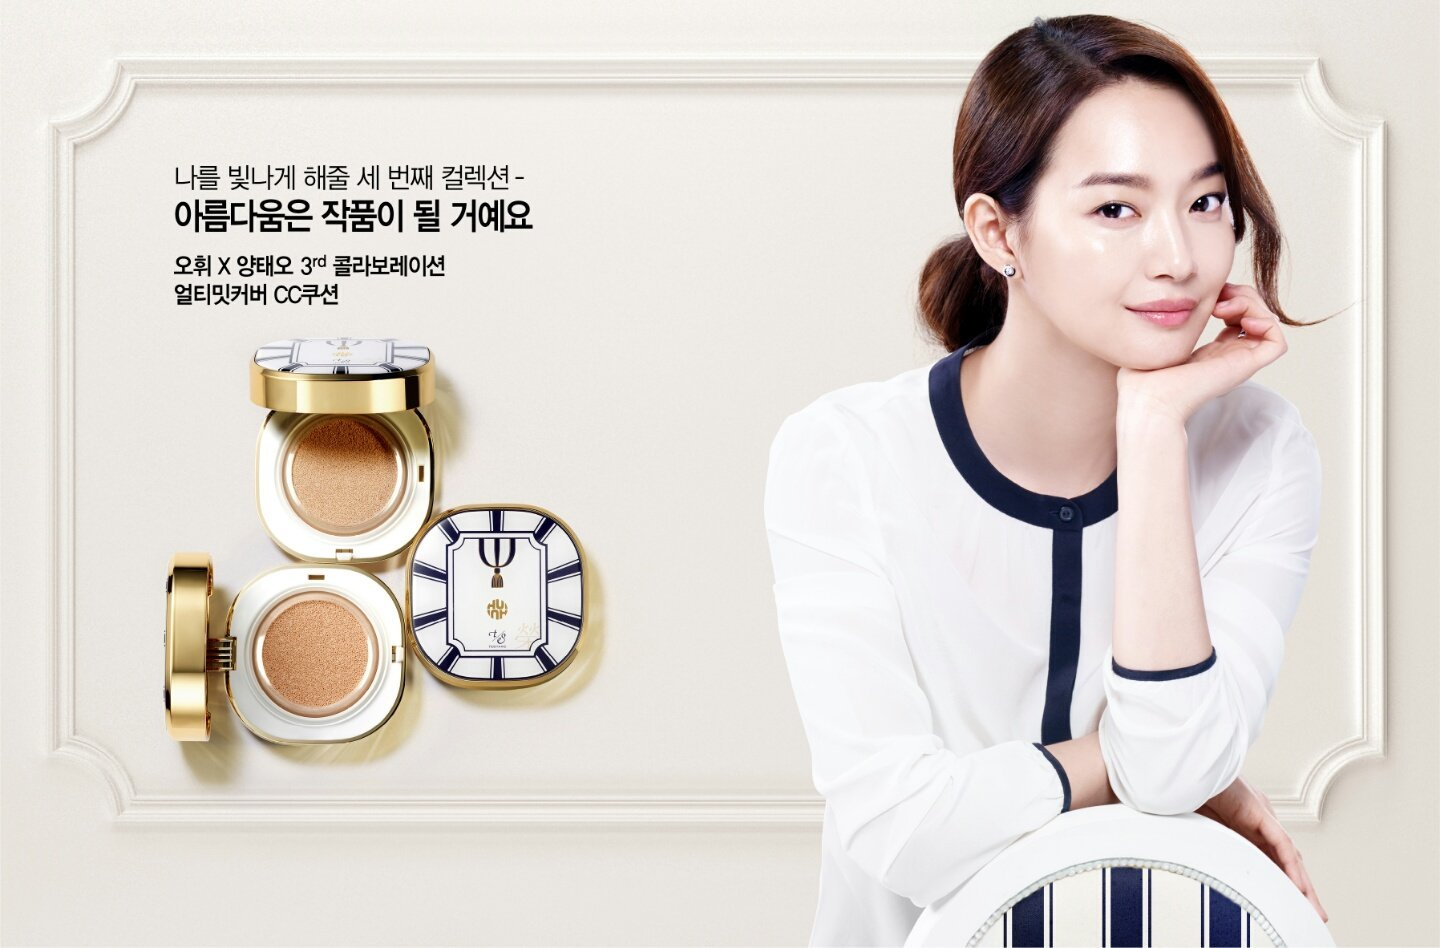 ohui-ultimate-cover-cc-cushion-deponline